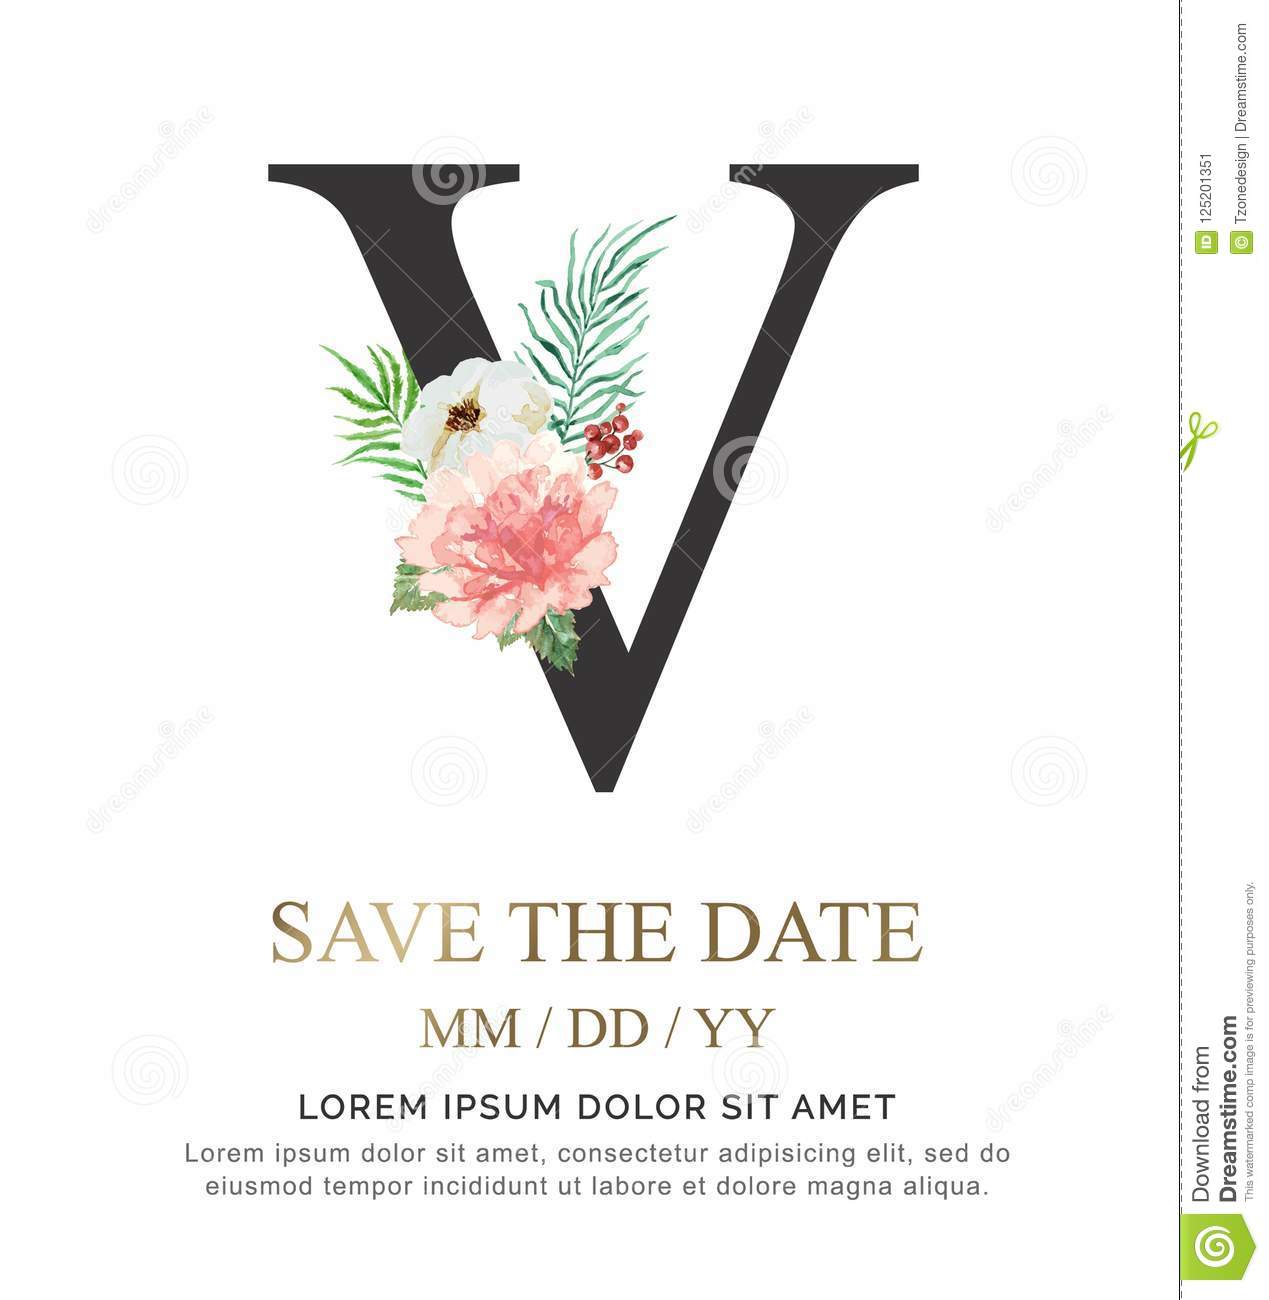 Letter V Hand Paint Watercolor Flower And Leaf For Wedding And